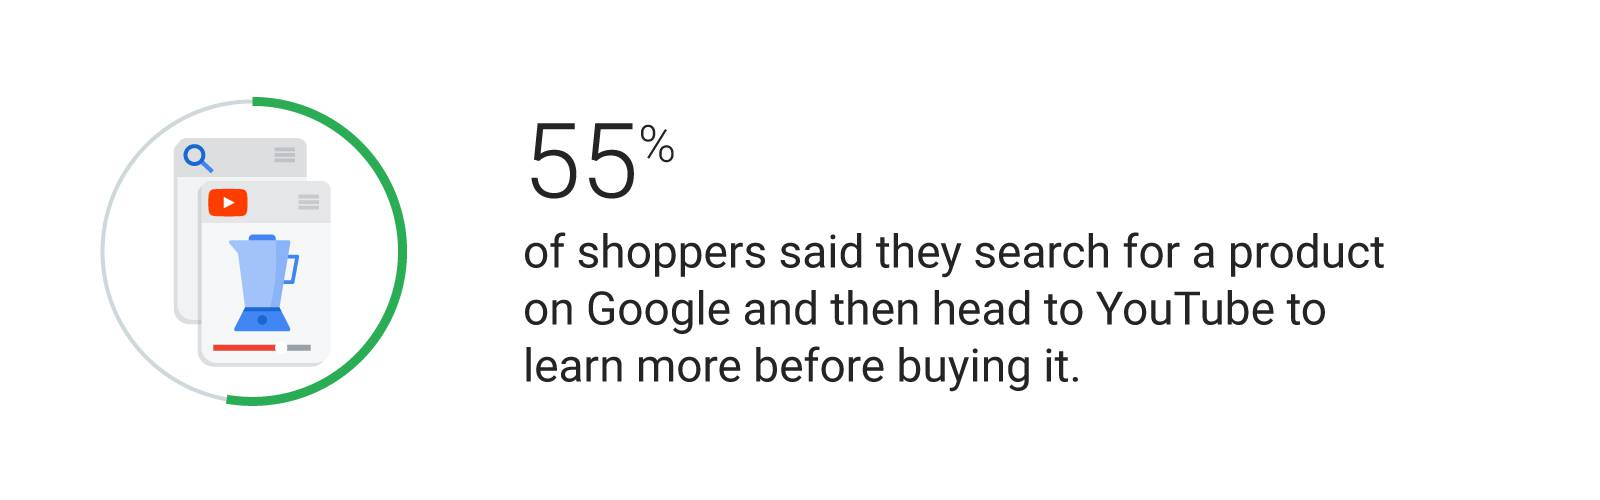 55% of shoppers said they search for a product on Google and then head to YouTube to learn more before buying it.